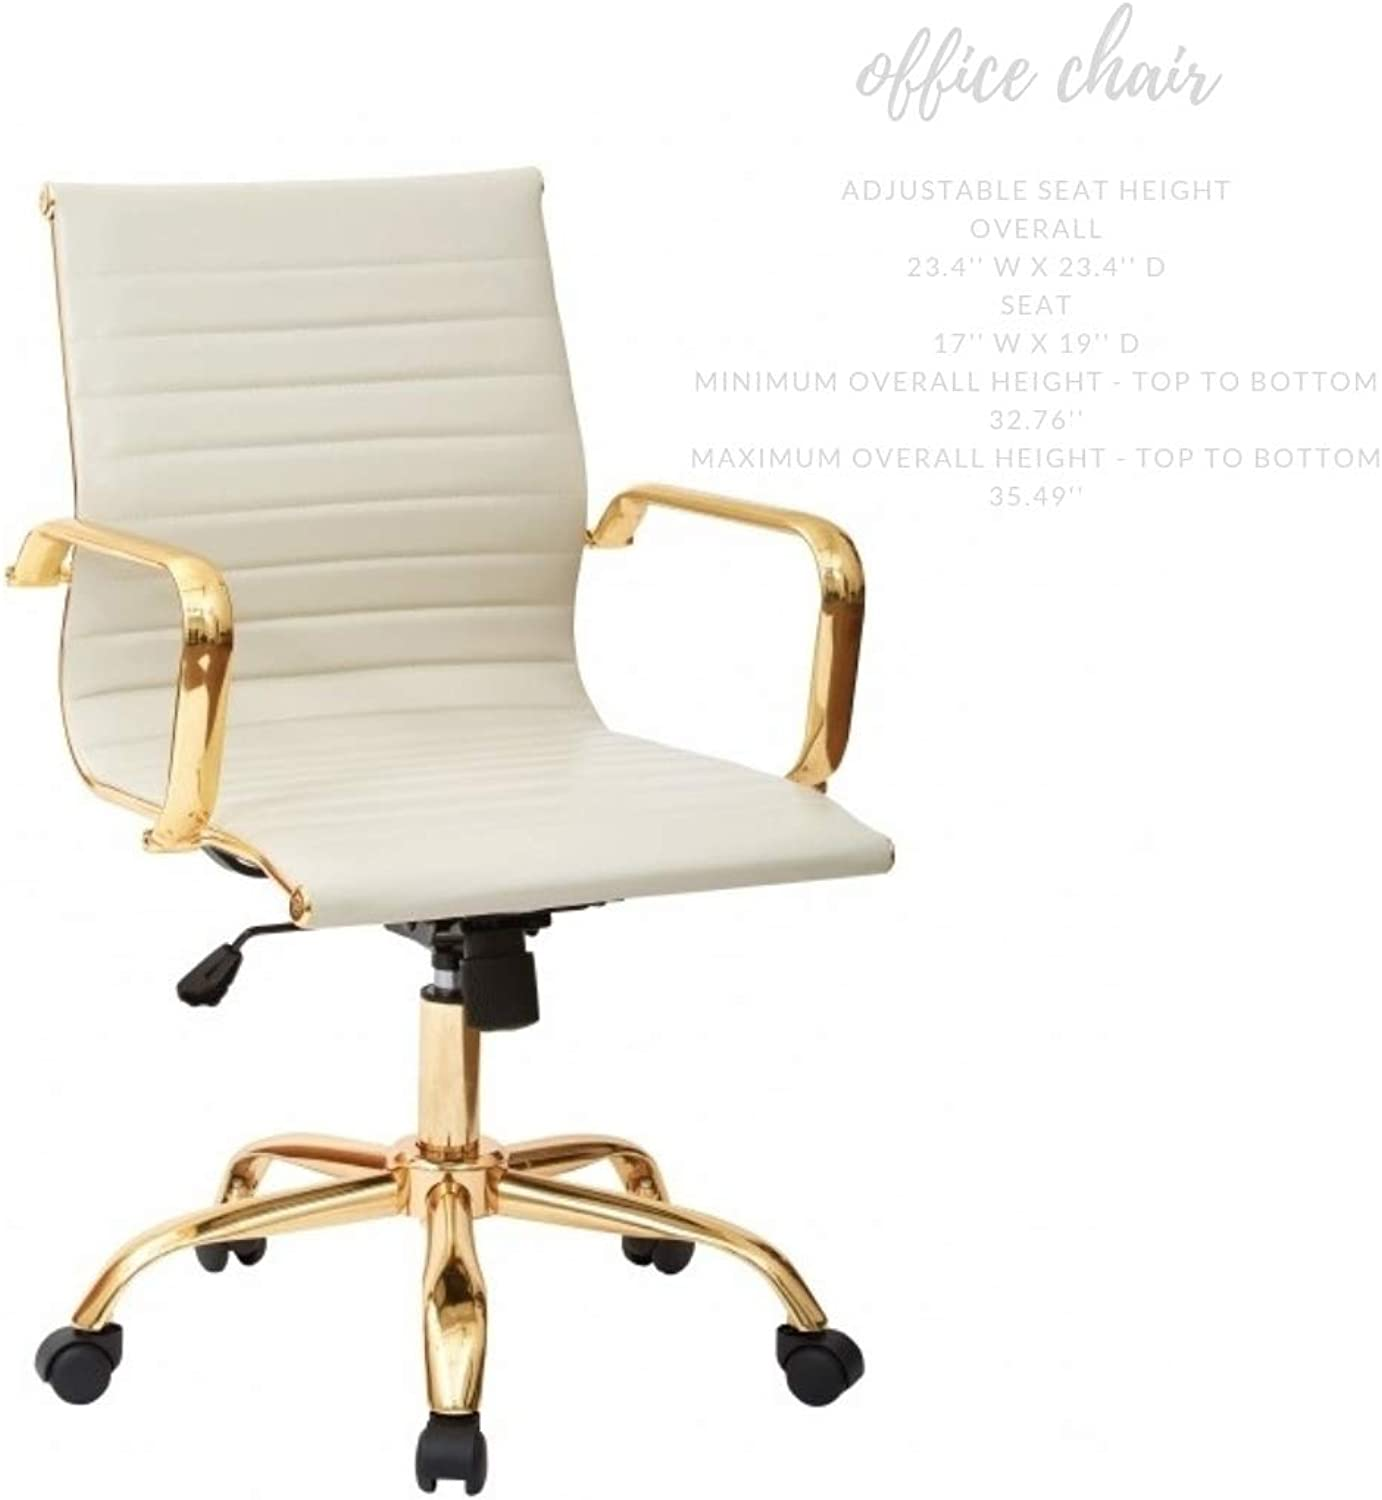 Take Me Home Furniture Toni Office Chair Low Back in gold with White seat, Adjustable Height, Swivel Office Chair